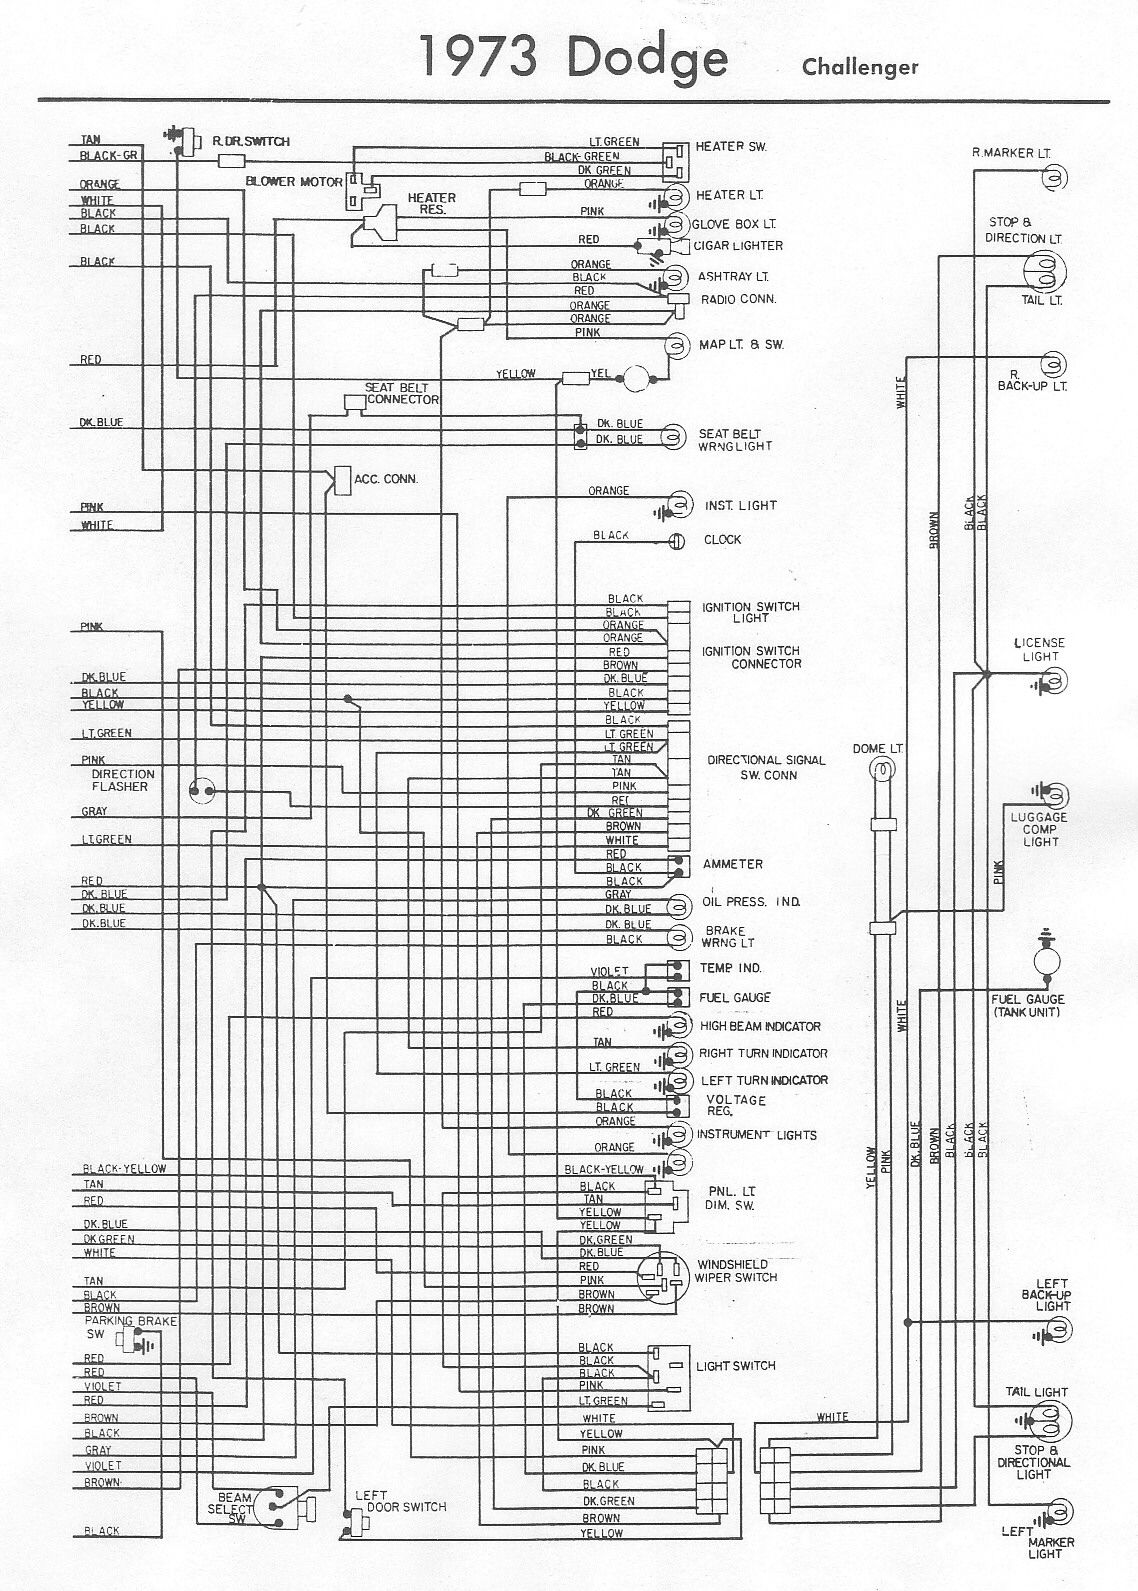 73 wiring diagram • the dodge challenger message board  files.mpoli.fi